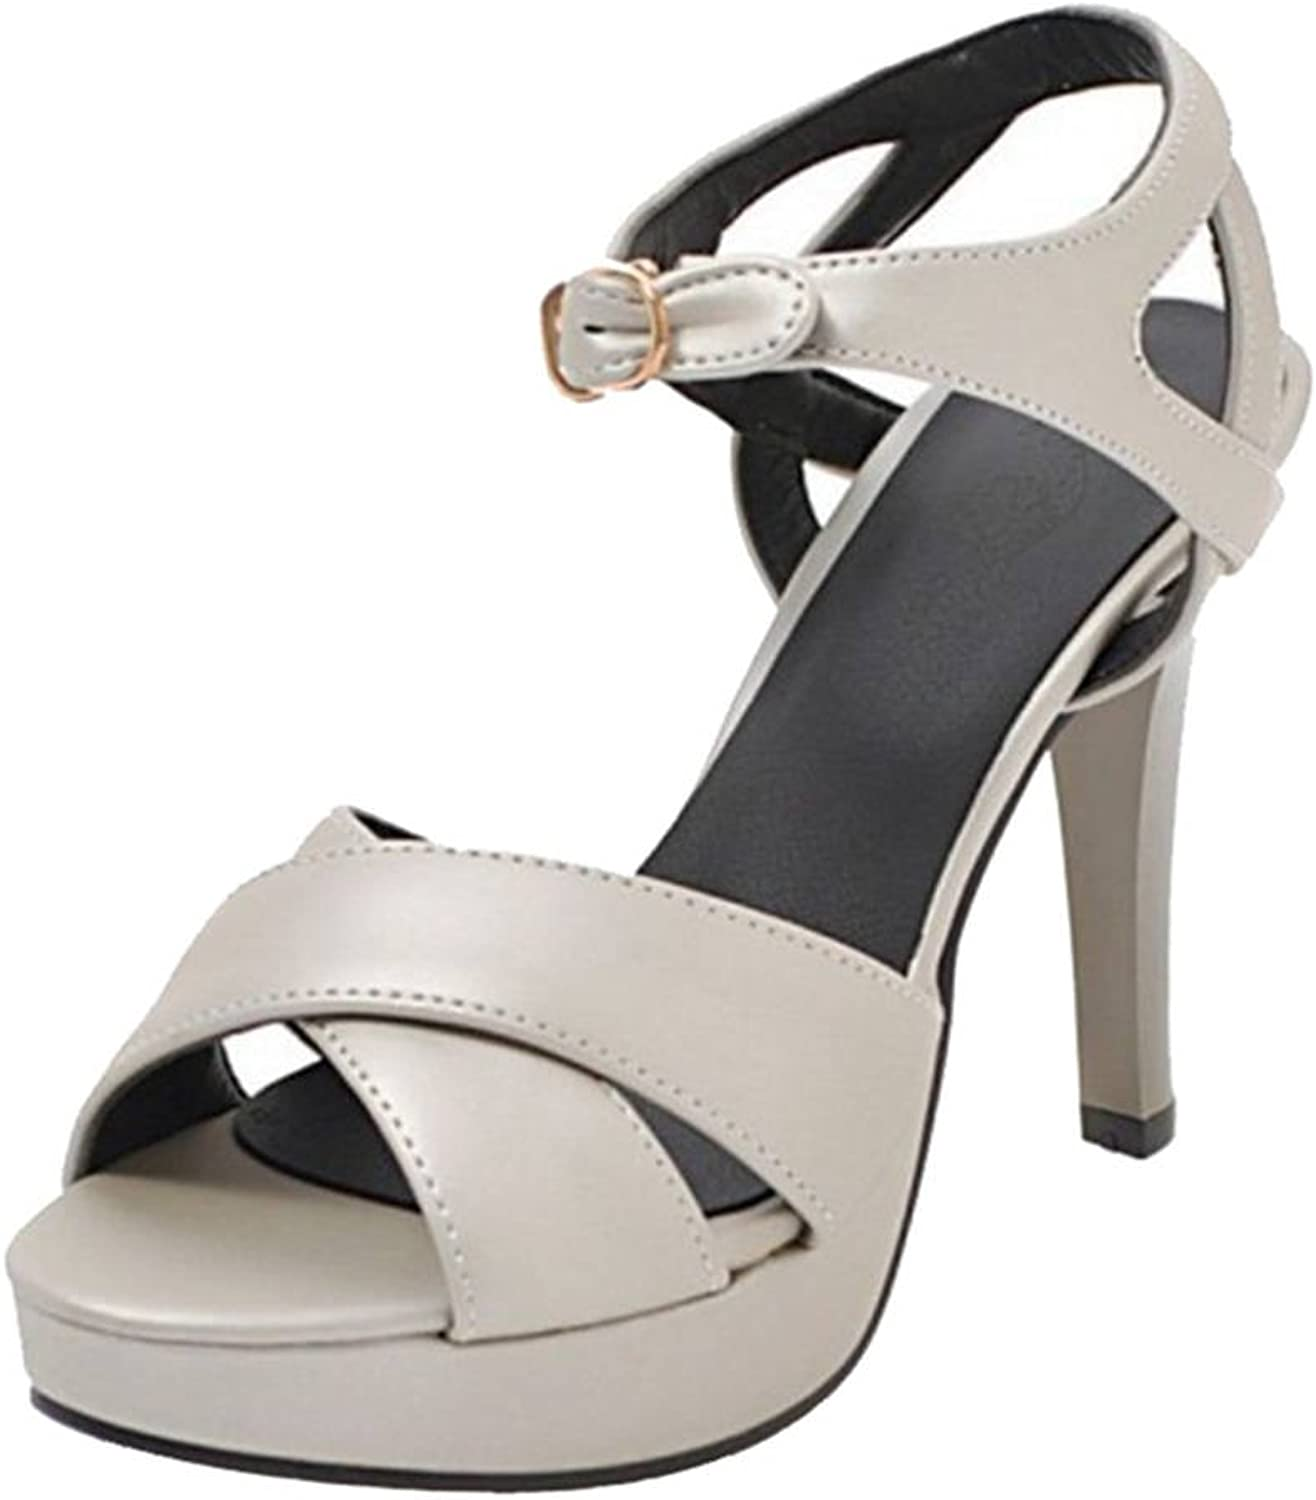 CUTEHEELS Sandals with High Thin Heel and Thick Platform Dressy Sandals for Wedding Parties